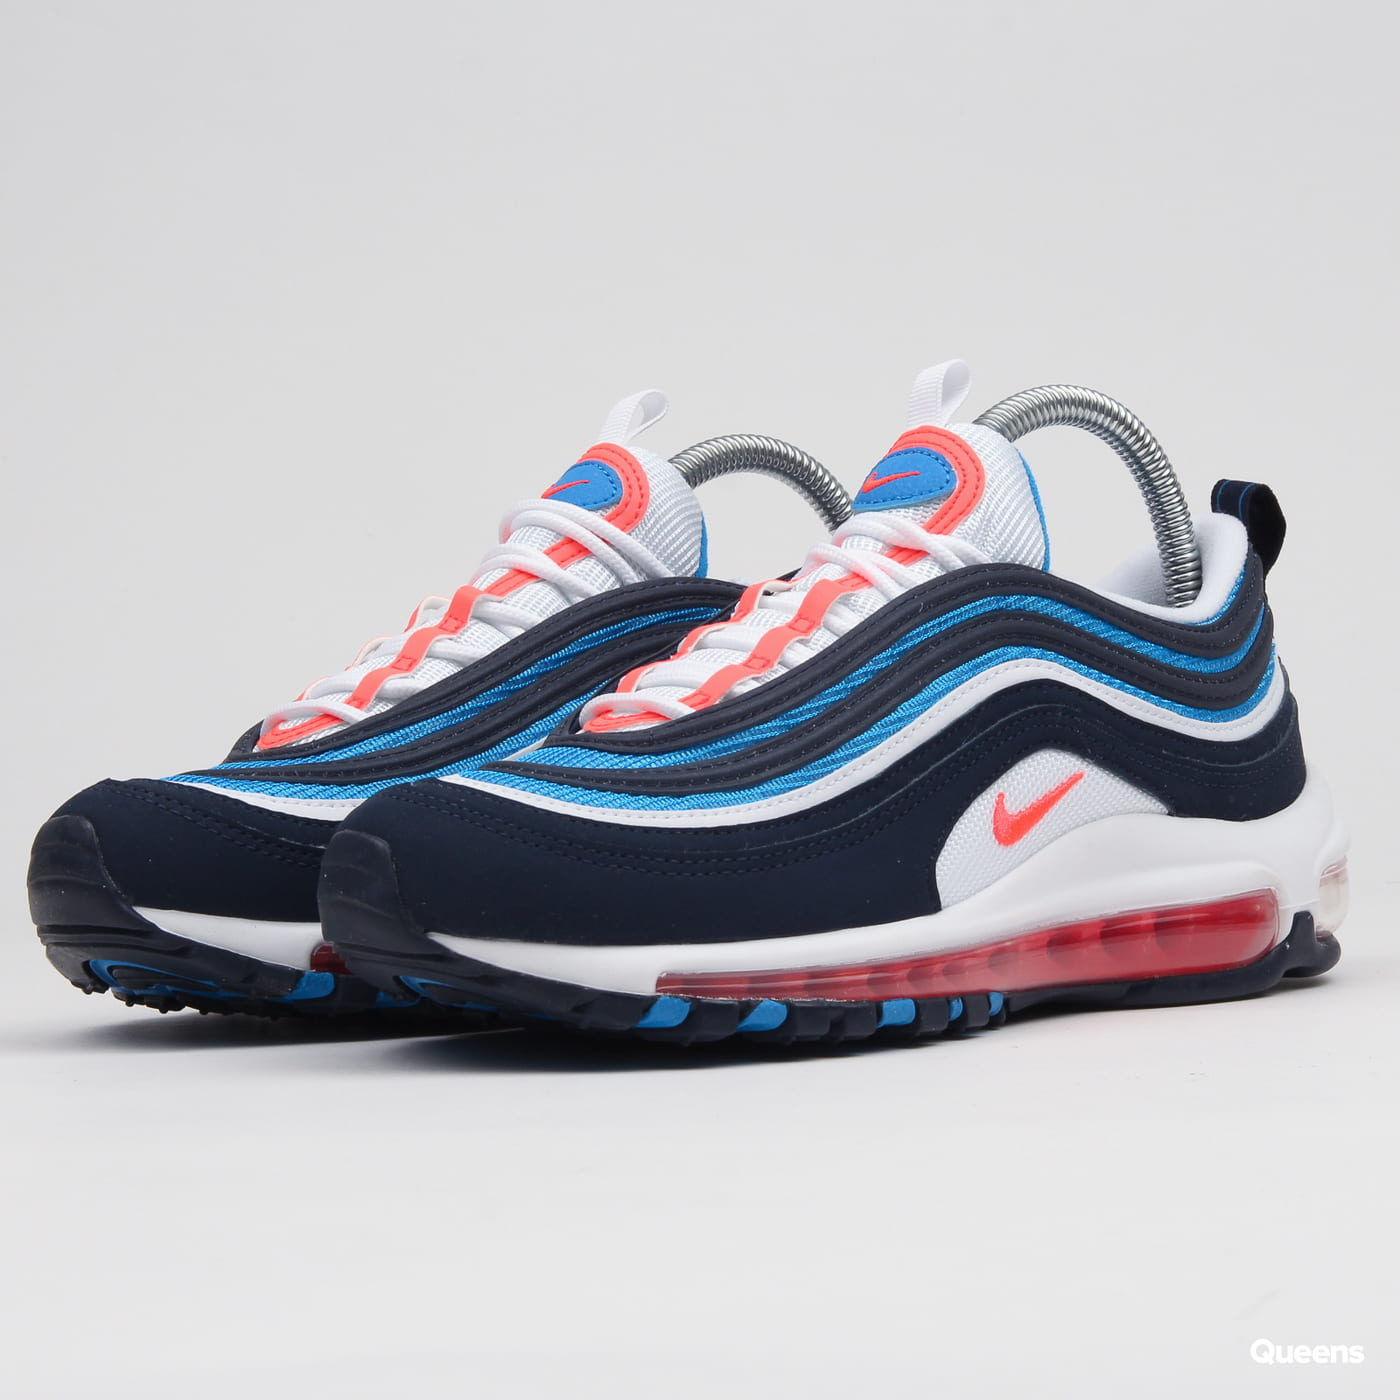 776a47ca5 Nike Air Max 97 BG white / bright crimson - obsidian (BQ7551-100) – Queens  💚